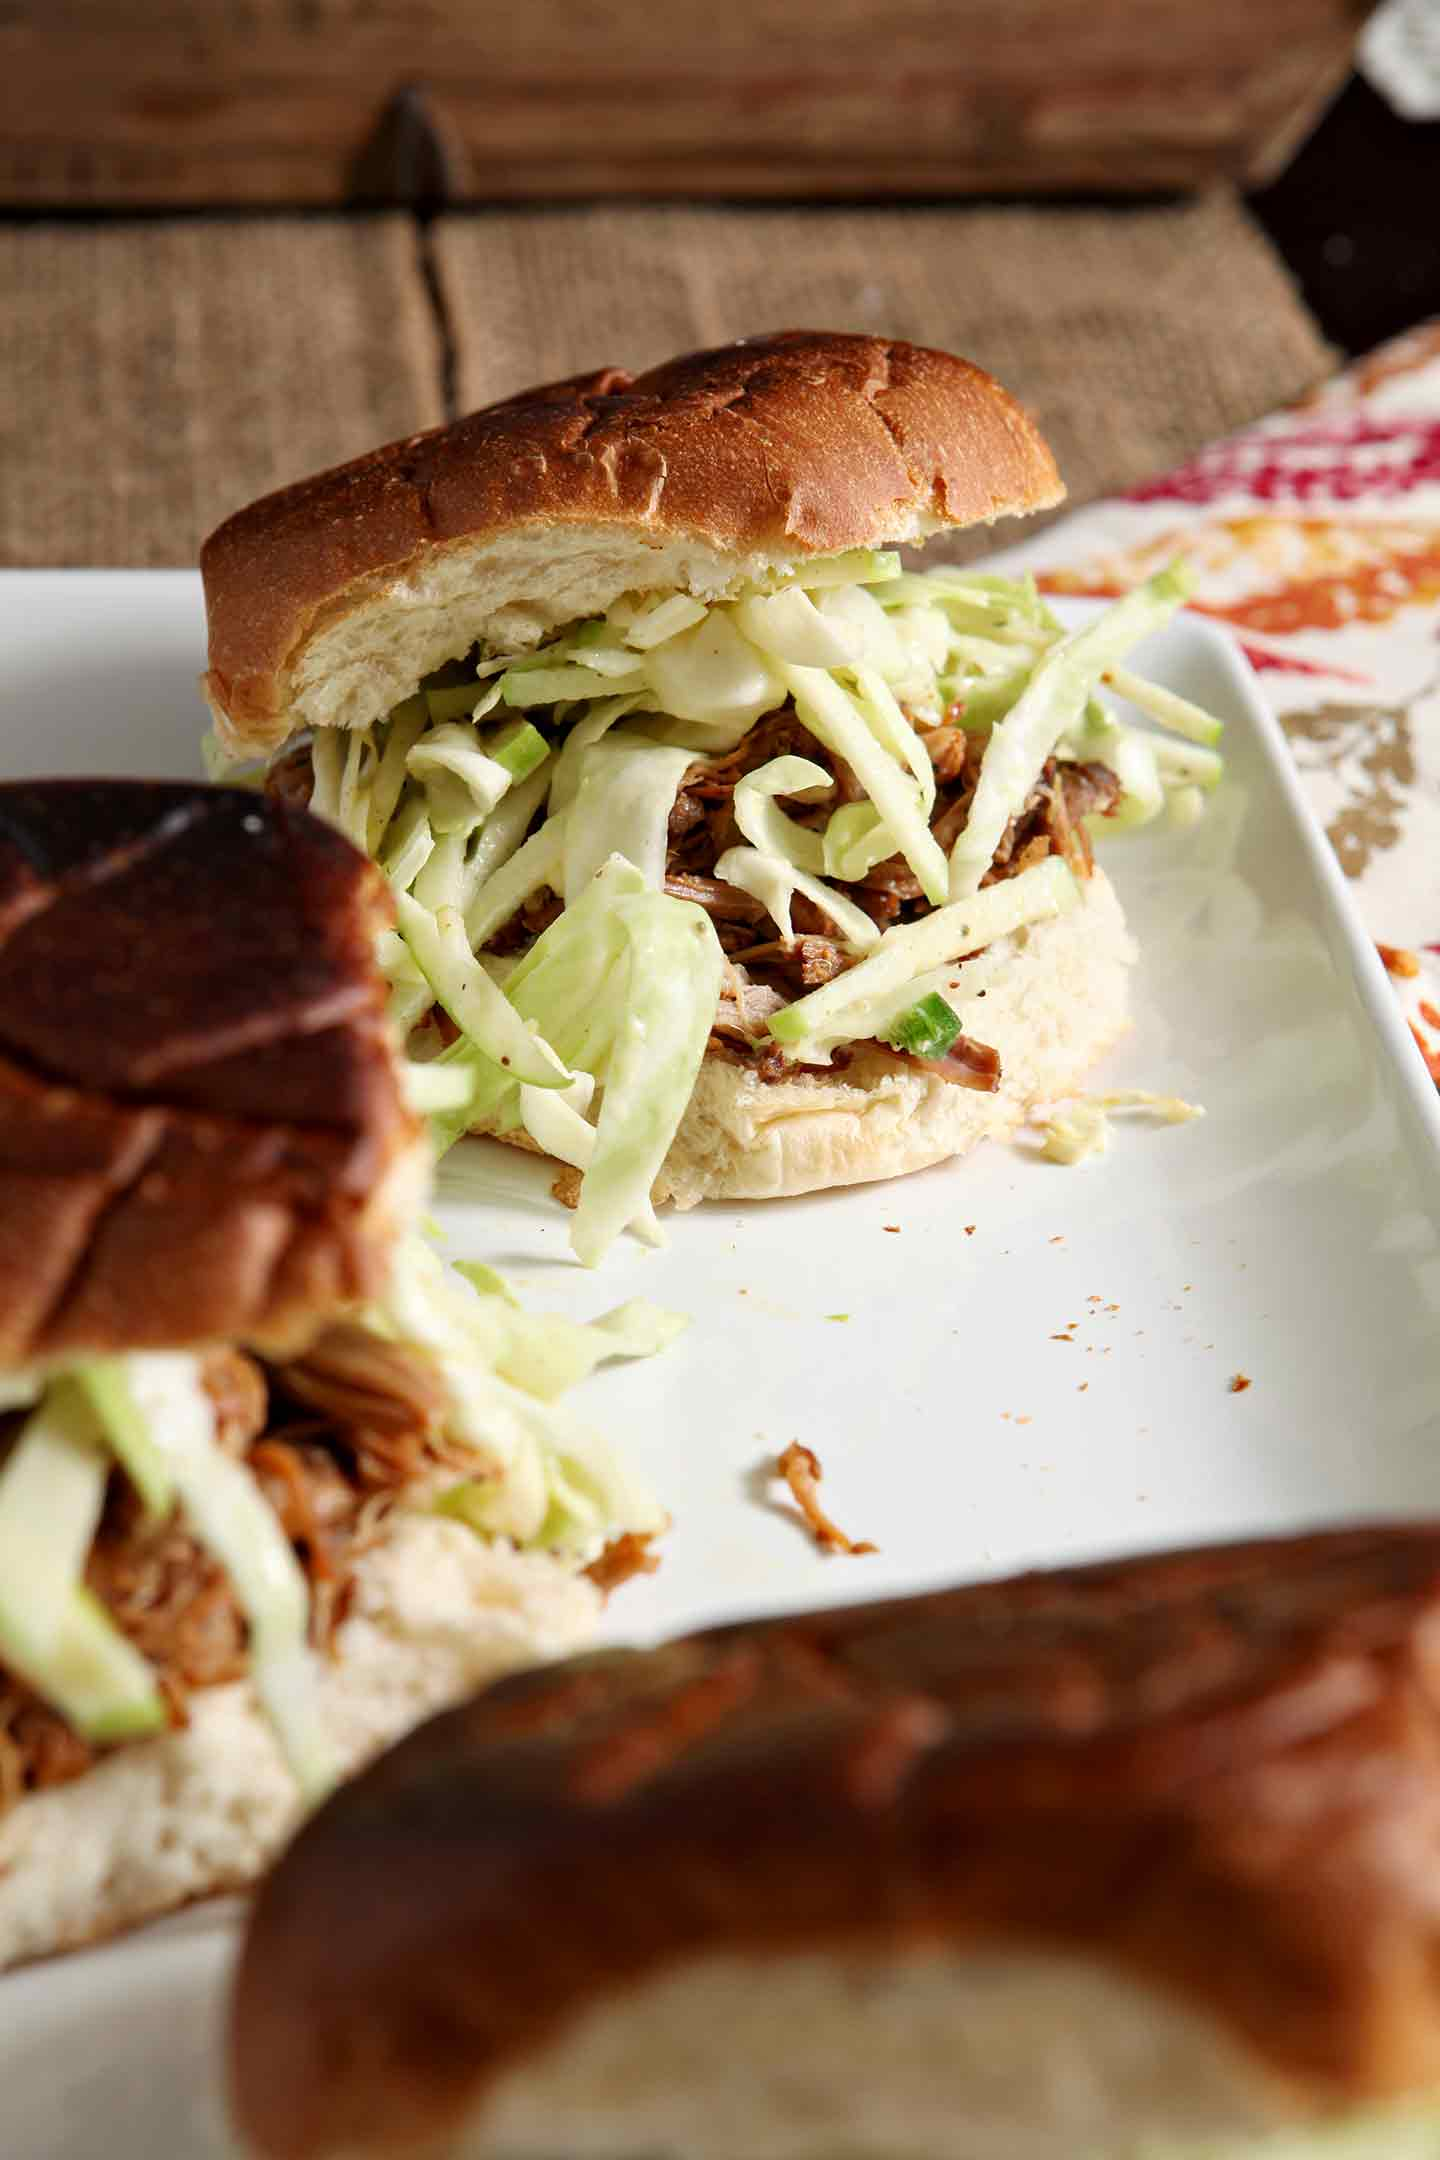 Pork and apples are an age-old combination... and this Apple Cider Pulled Pork with Apple Cabbage Slaw is the perfect entree for any fall get together or a simple weeknight meal. Pork butt simmers in spiced apple cider for hours in the slow cooker before shredding. Serve on a toasted bun with a tart apple cabbage coleslaw in a creamy yogurt sauce. Apple Cider Pulled Pork with Apple Cabbage Slaw makes a delicious meal for the whole family!